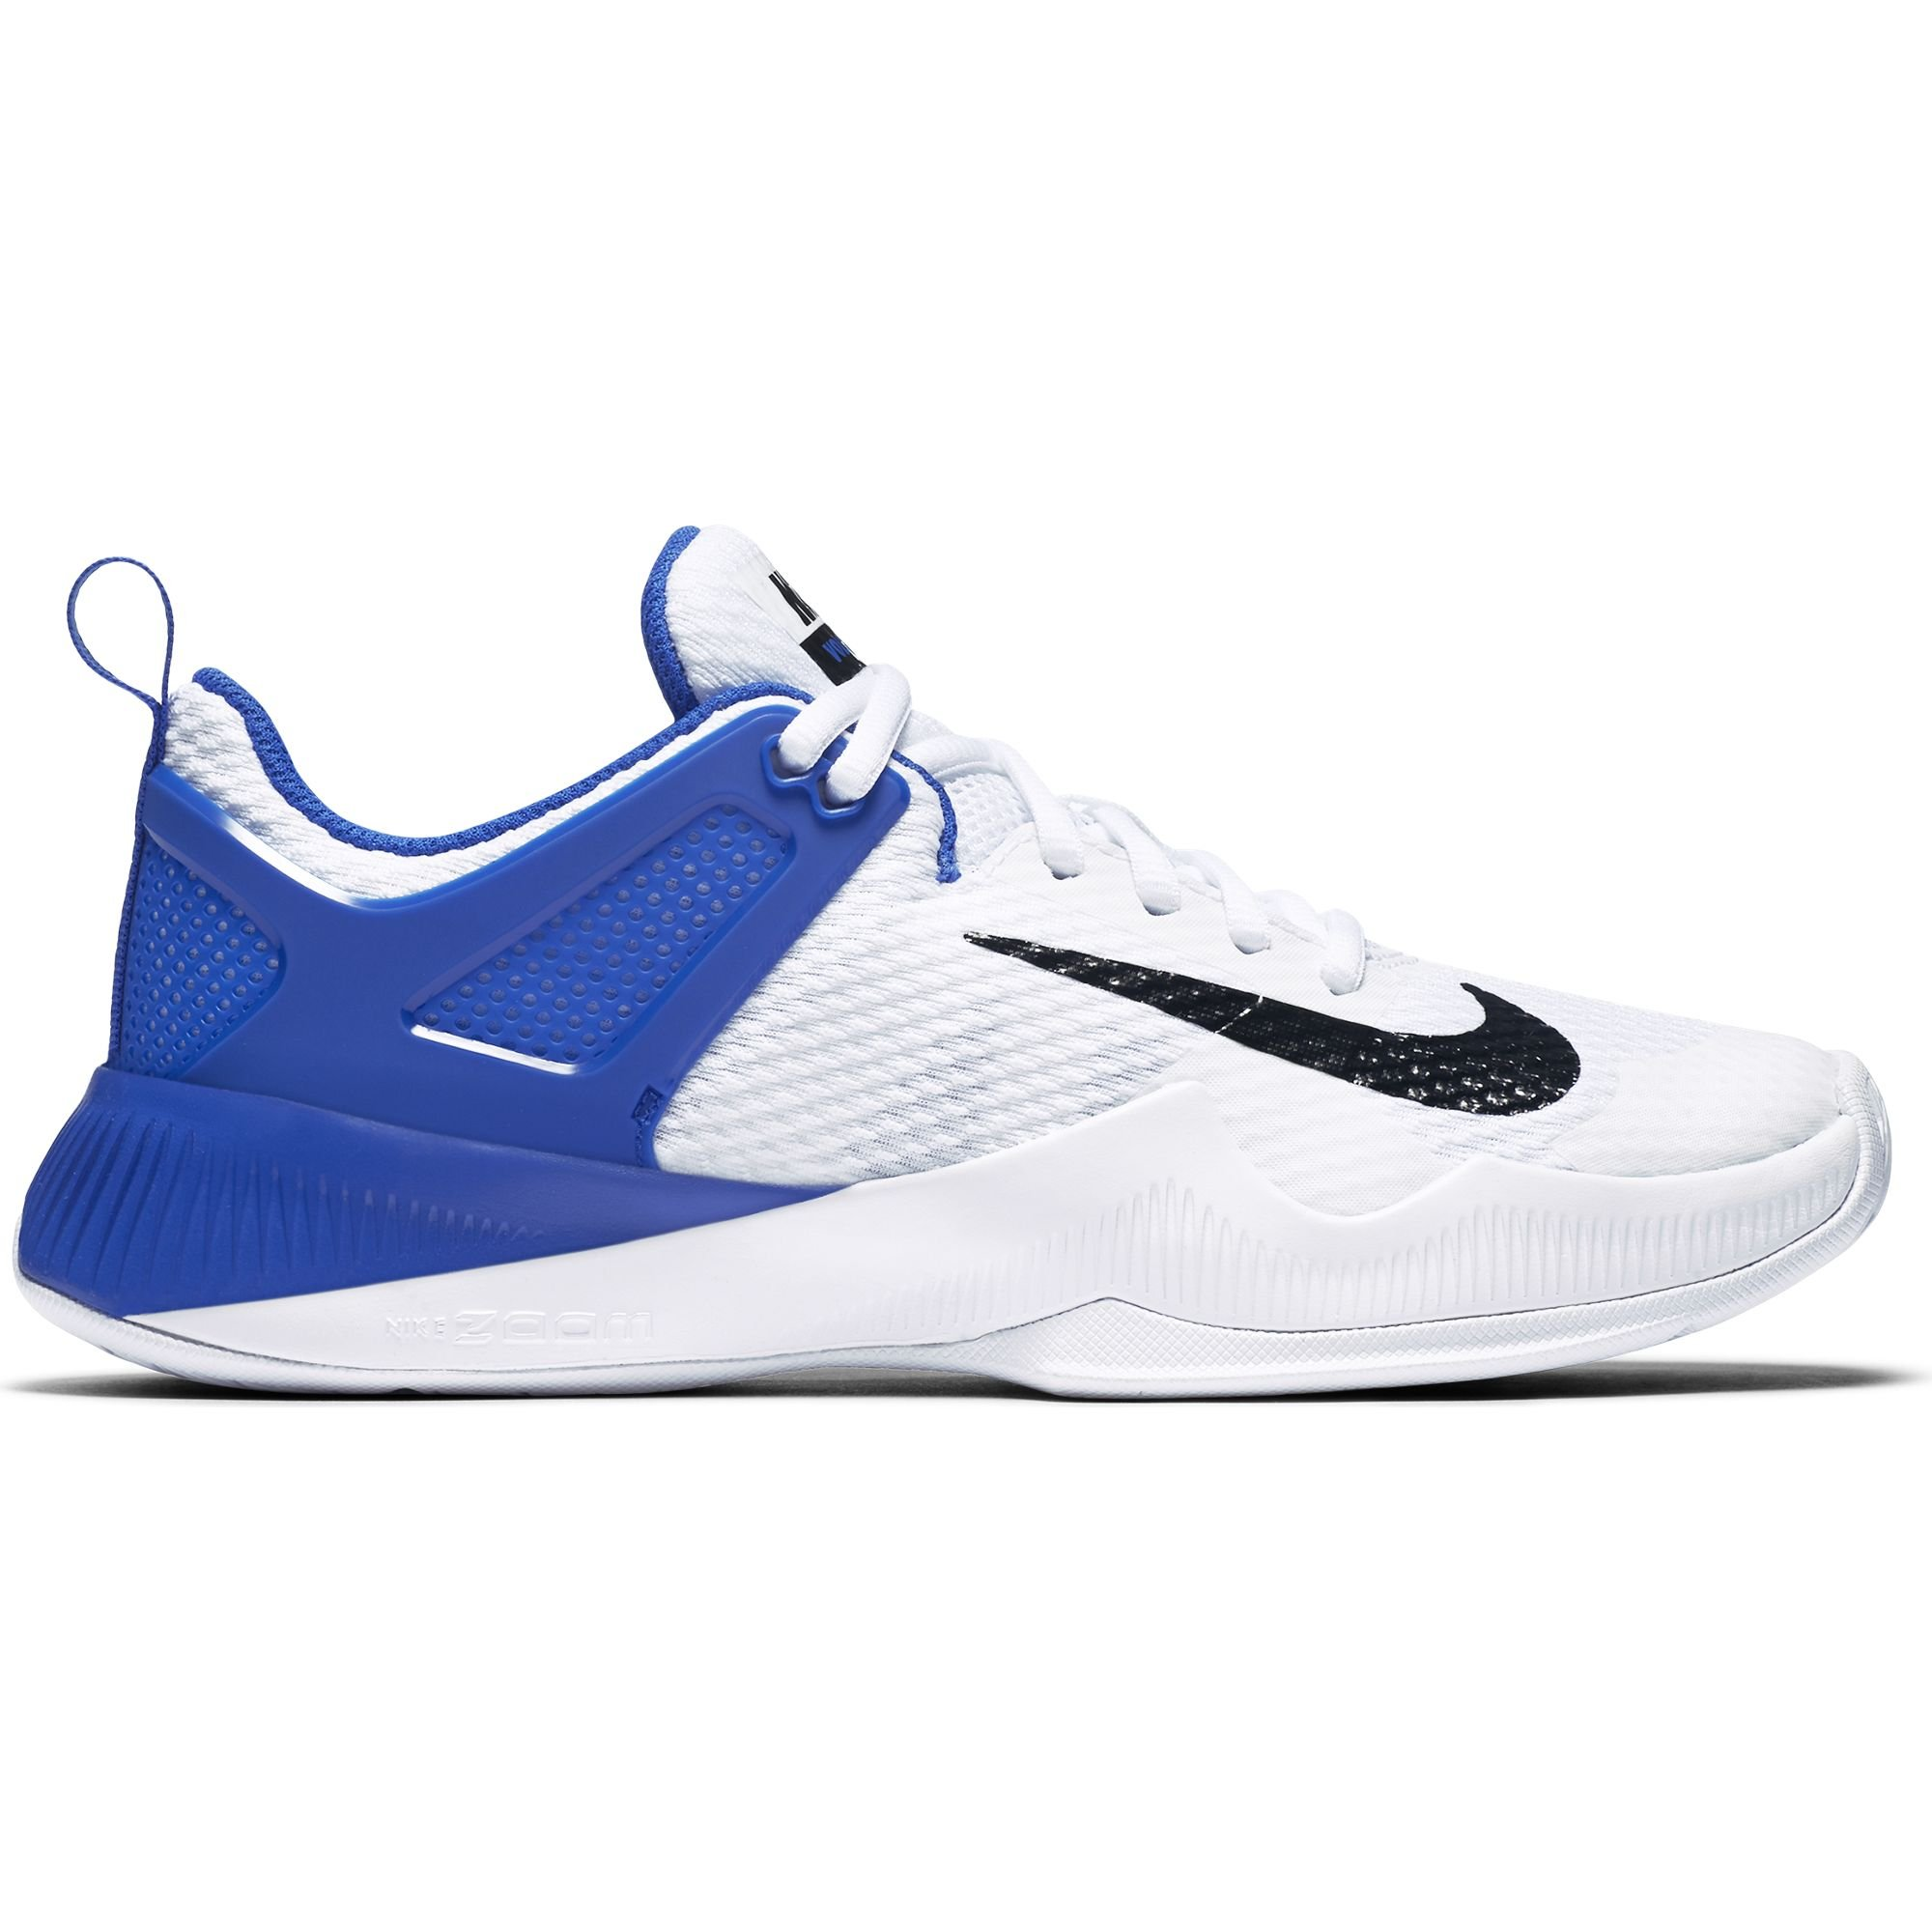 7db6dfd194d3 Galleon - Nike Women s Air Zoom Hyperace Volleyball Shoes White Black Game  Royal Size 6.5 M US